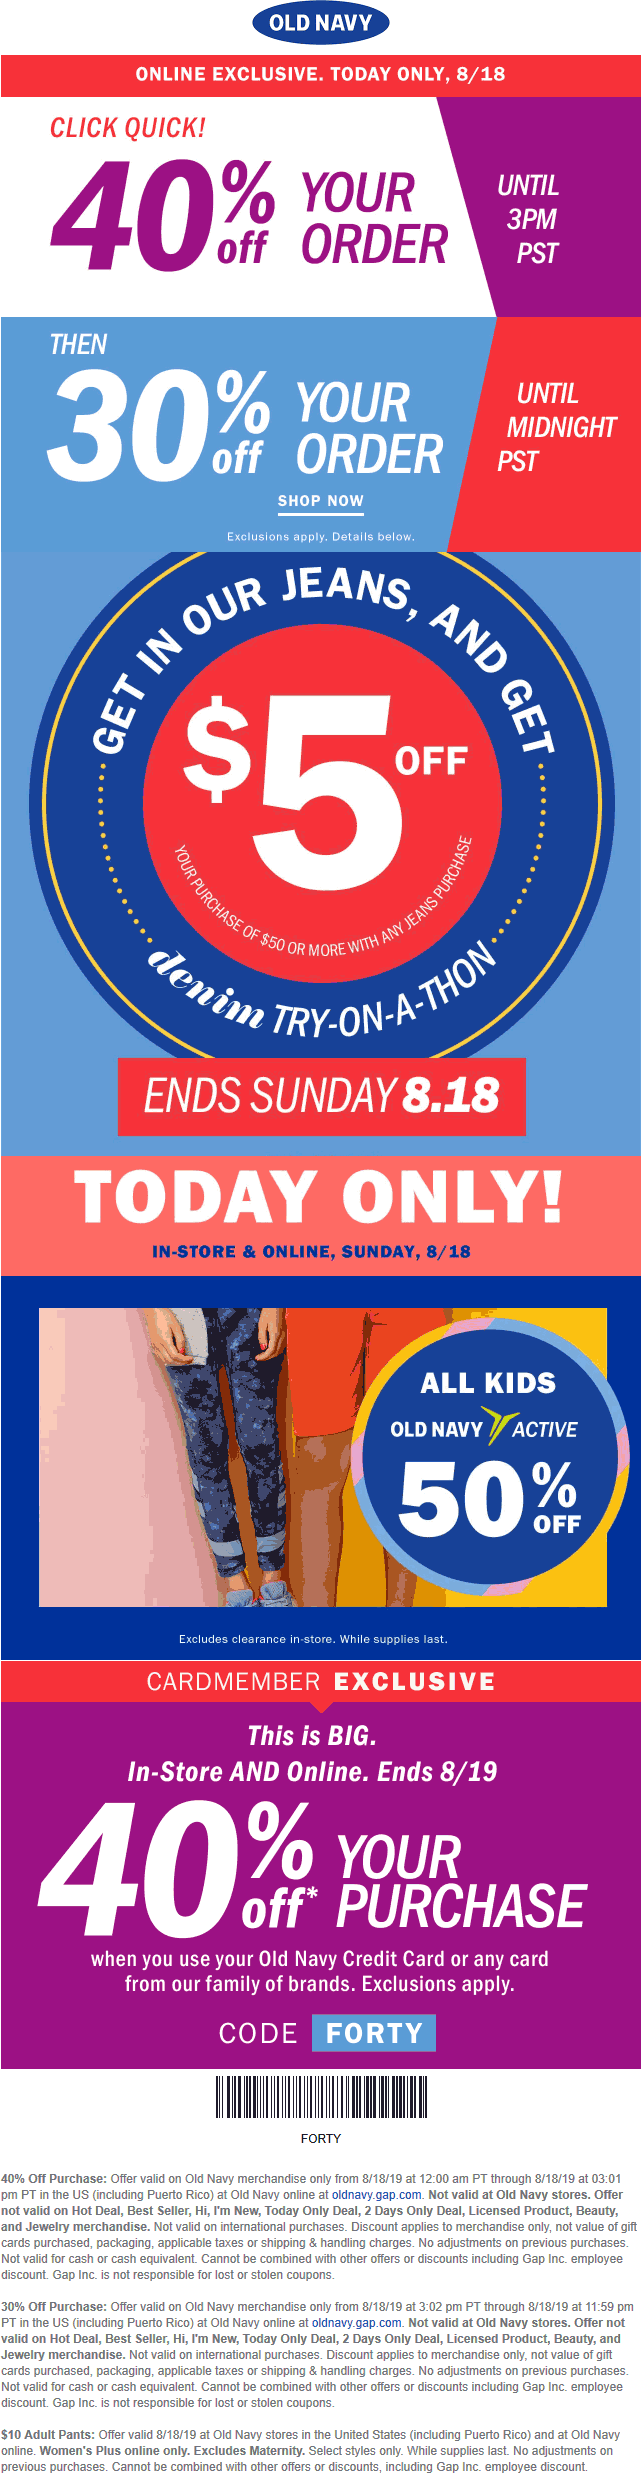 Old Navy Coupon February 2020 40% off online & more today at Old Navy via promo code FORTY